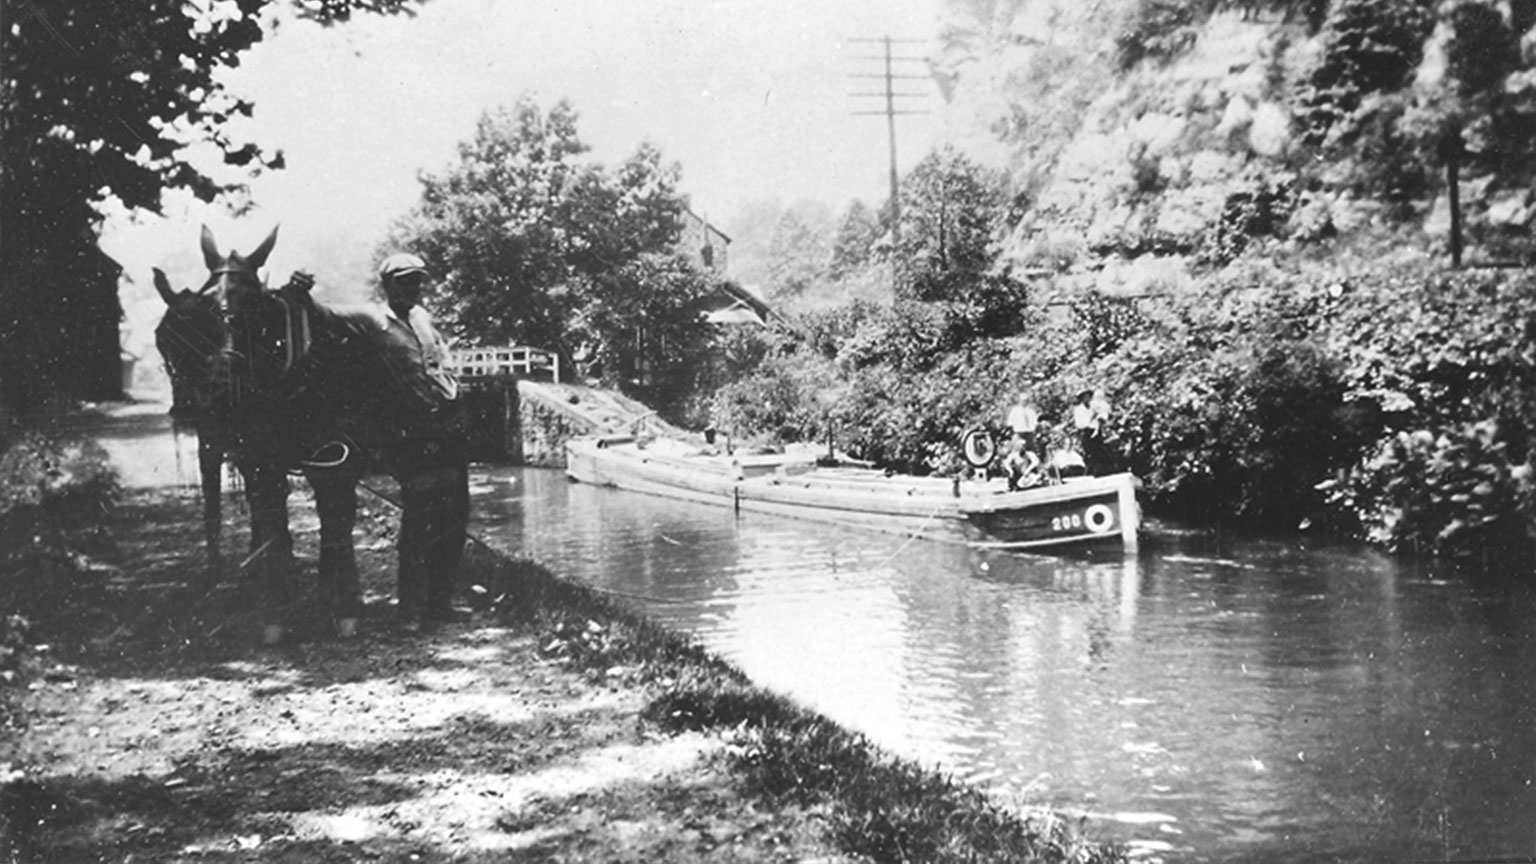 This picture is taken at the lock in Freemansburg.  It clearly shows the logo for LCNC as well as a hinge boat, mules and their mule tender waiting on the towpath.